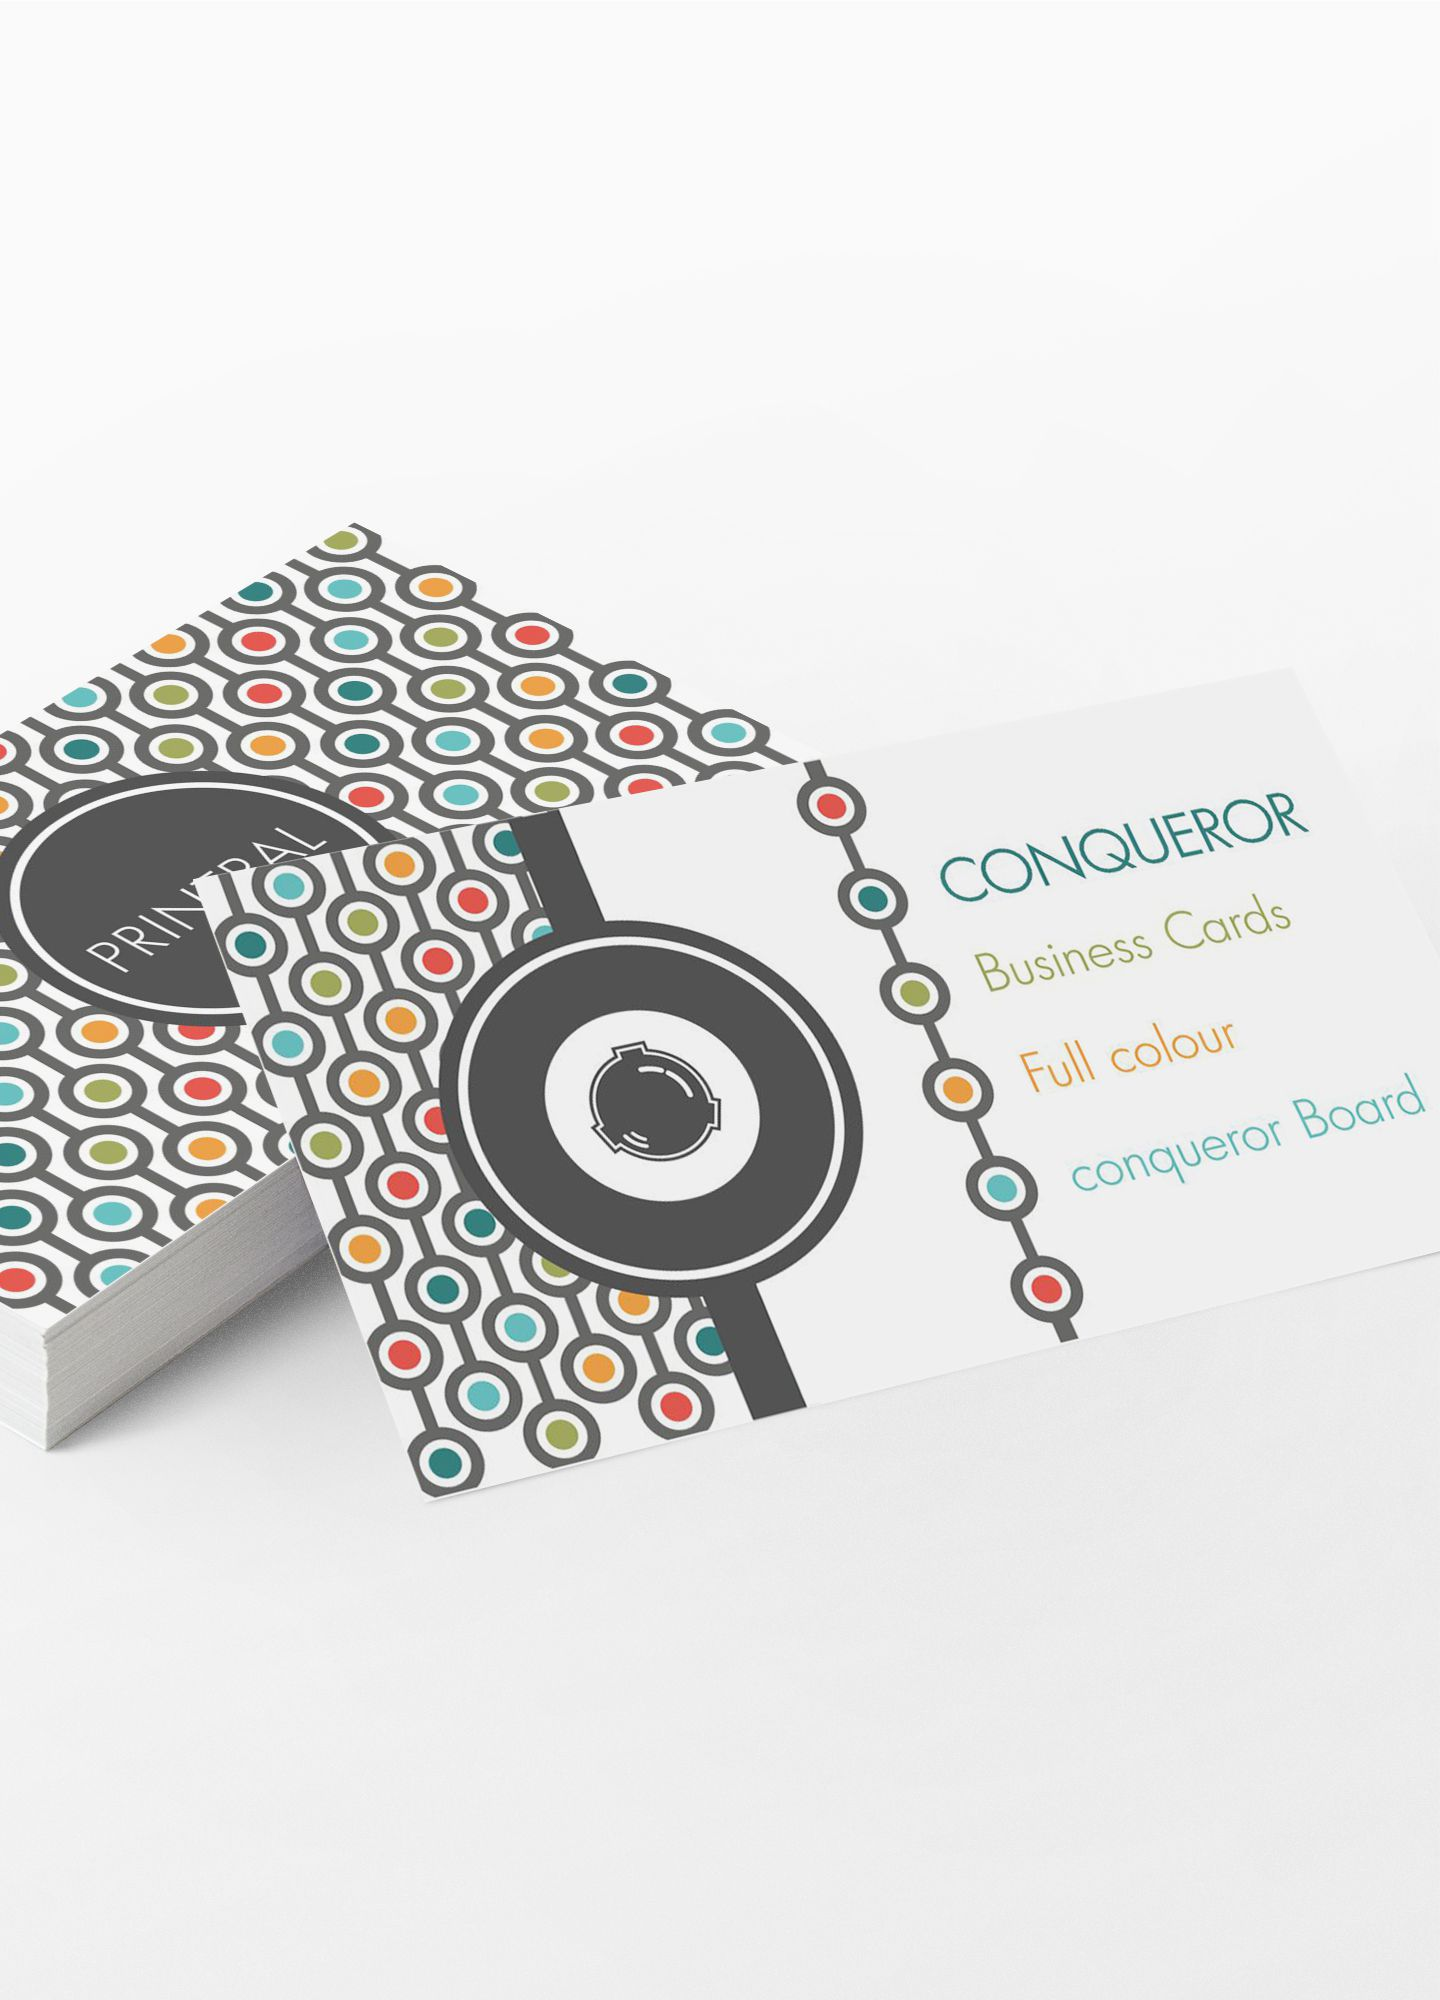 Conqueror Business Cards – London Poster Printing